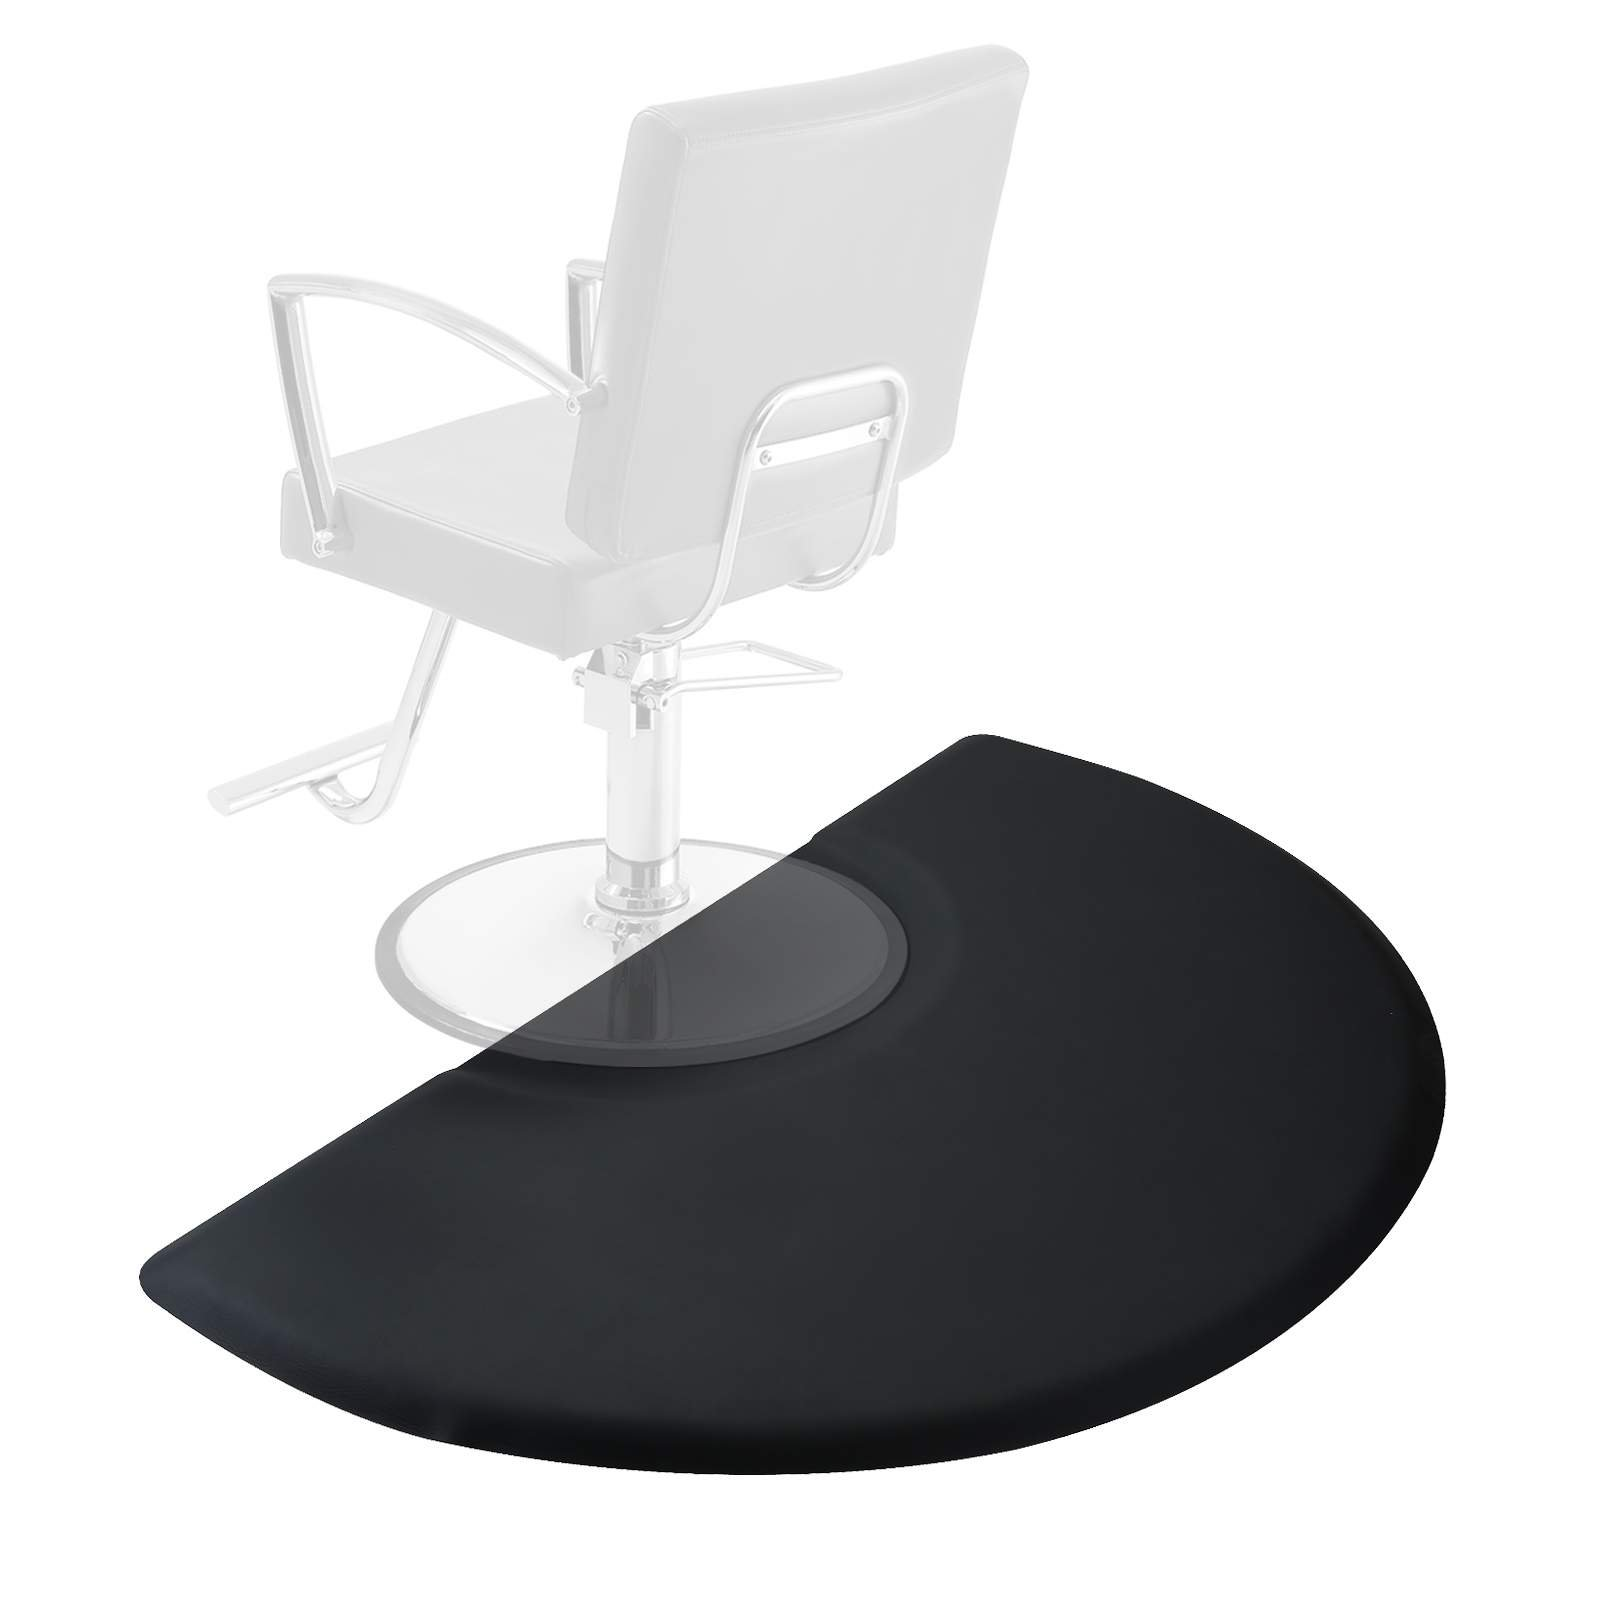 Saloniture 3 ft. x 5 ft. Salon & Barber Shop Chair Anti-Fatigue Floor Mat - Black Semi Circle - 7/8 in. Thick